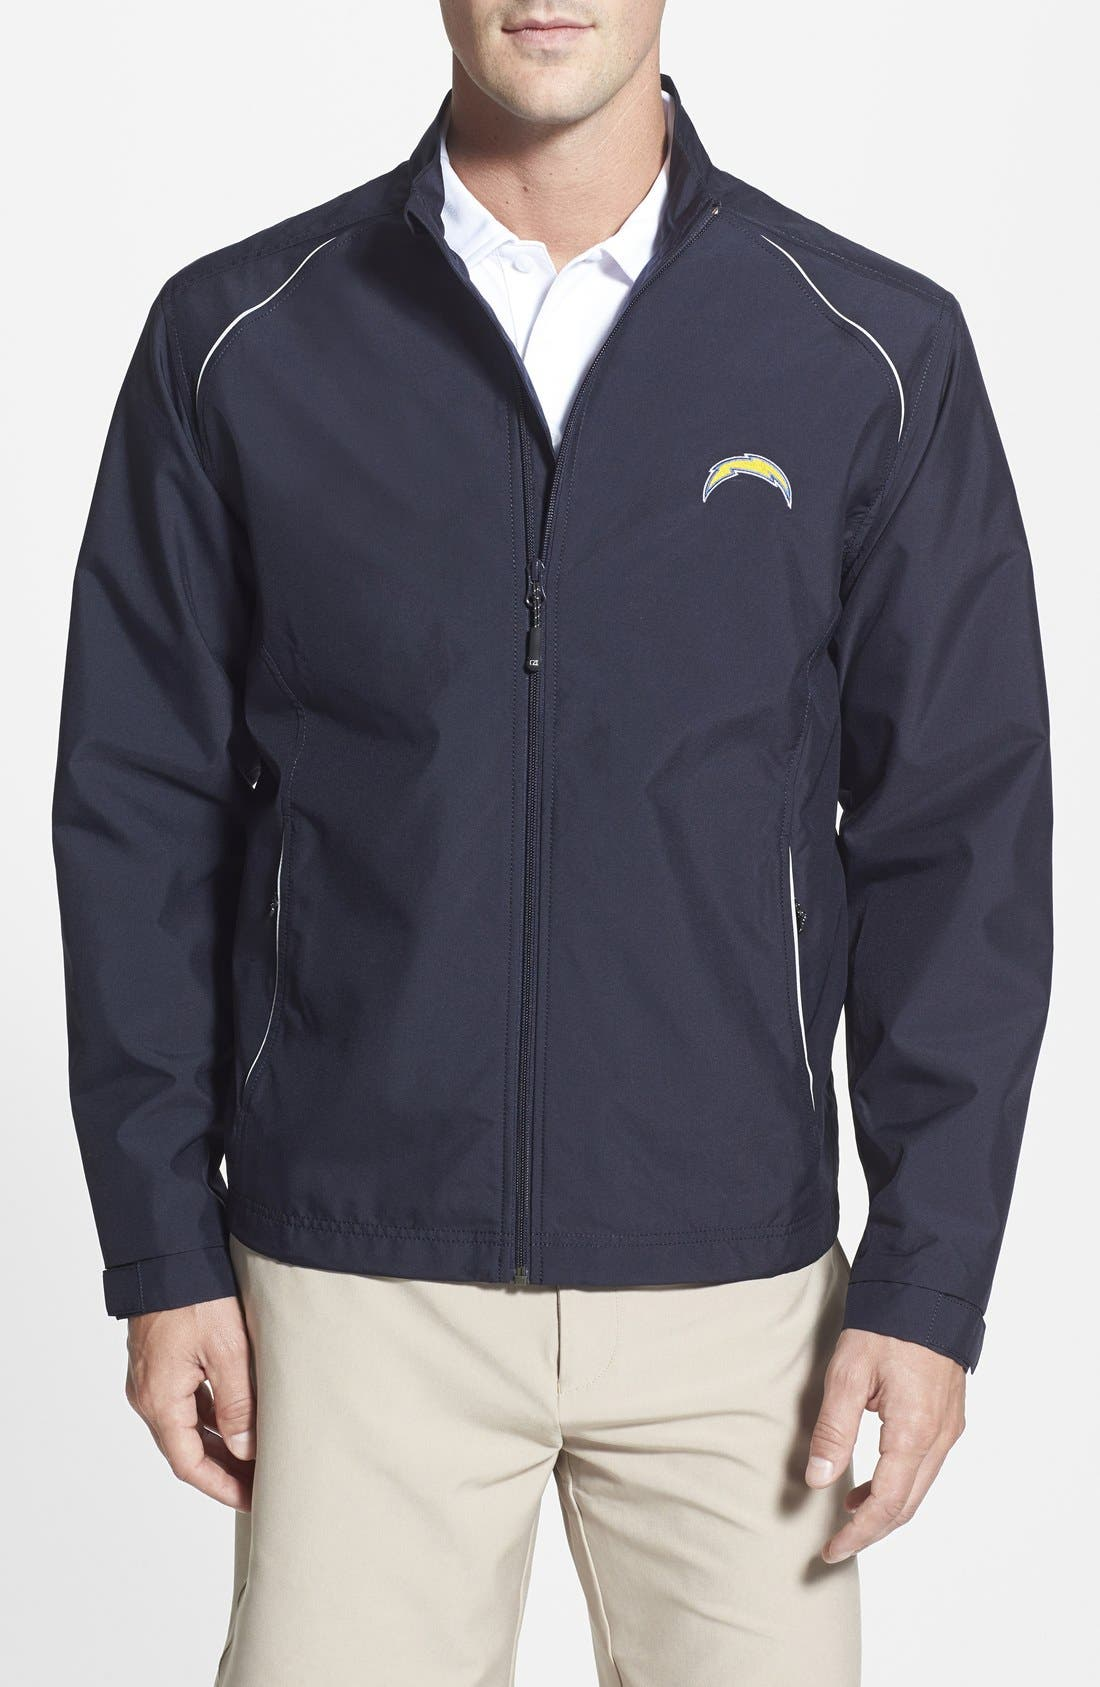 San Diego Chargers - Beacon WeatherTec Wind & Water Resistant Jacket,                             Main thumbnail 1, color,                             420